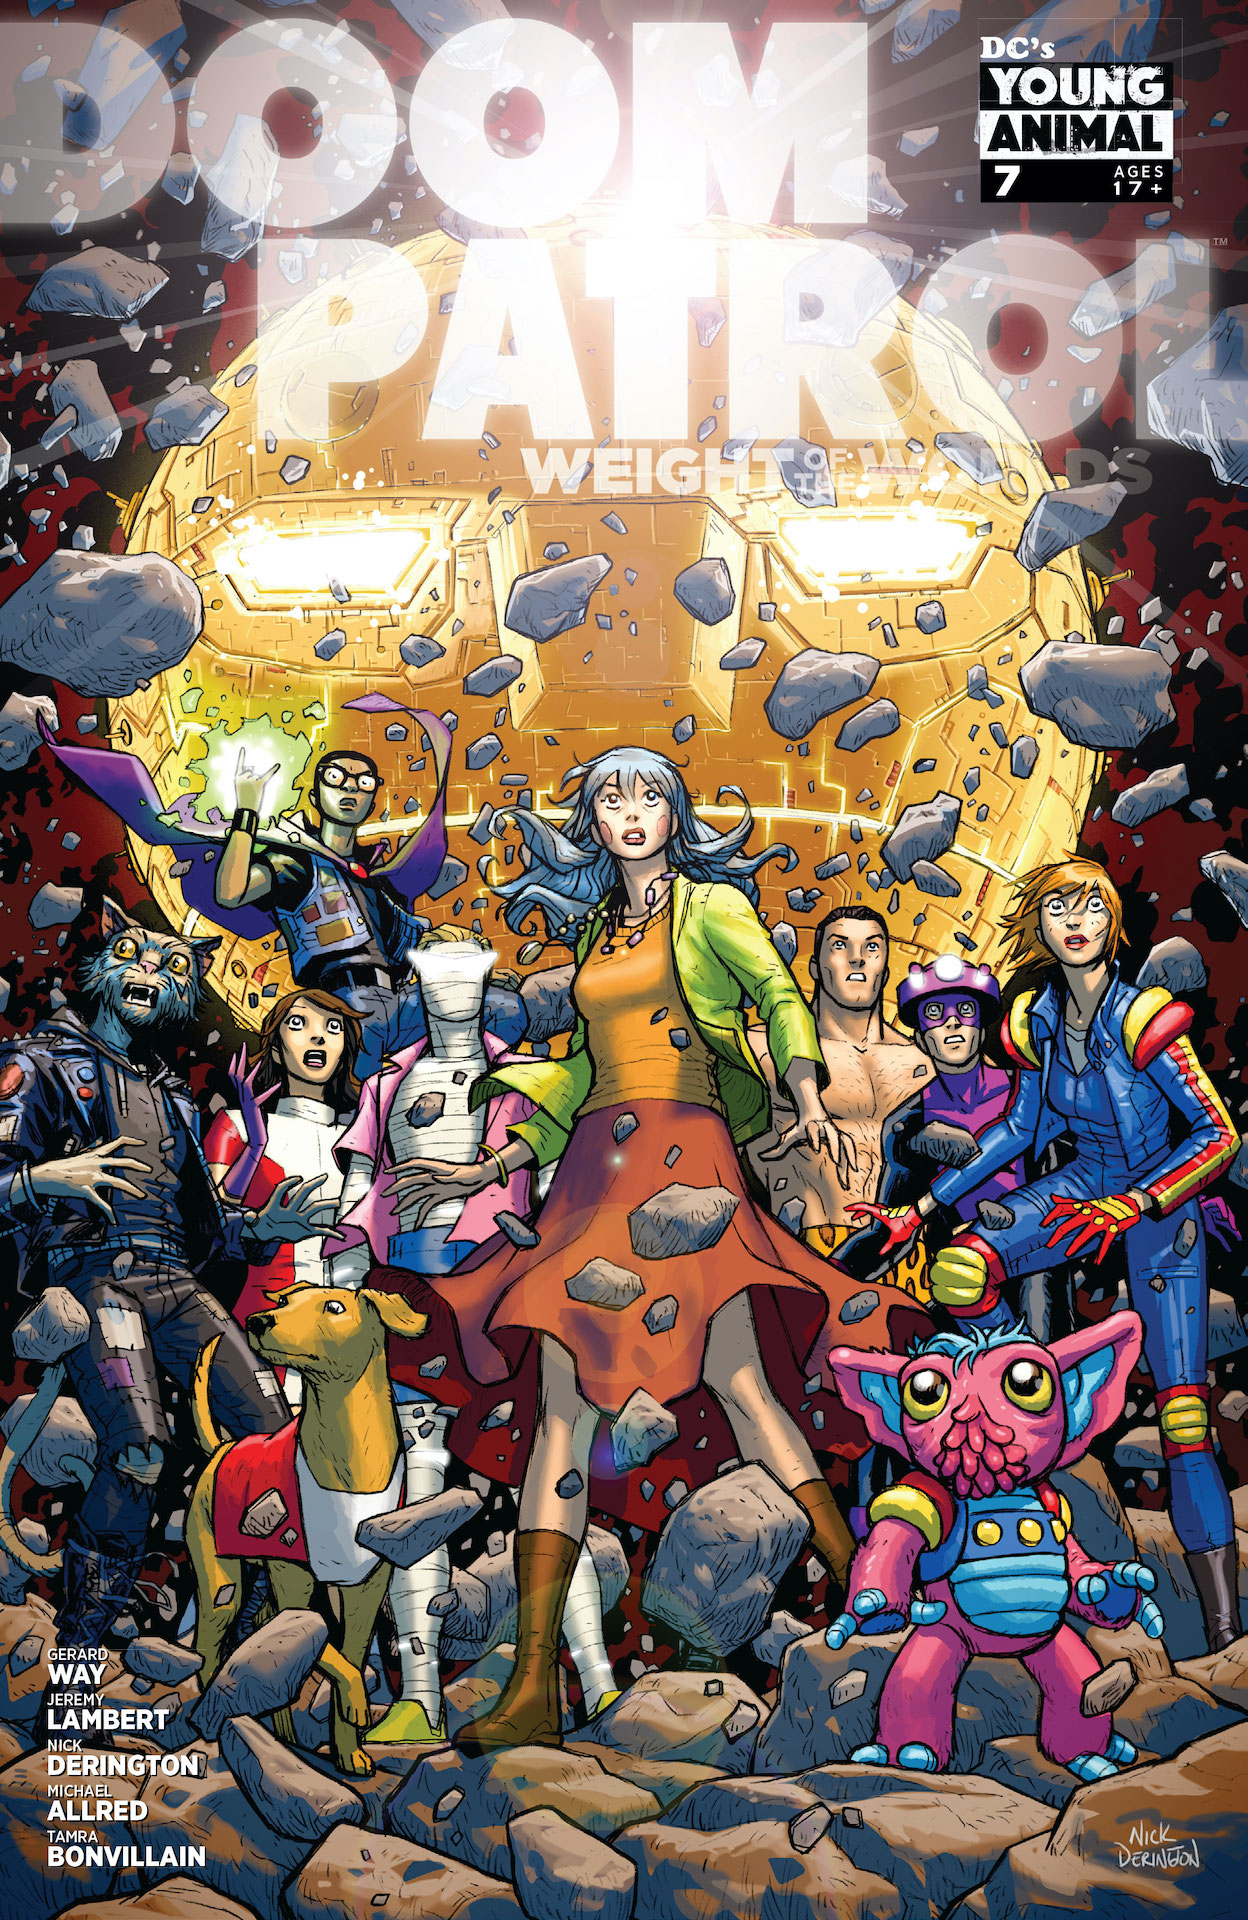 DC Preview: Doom Patrol: Weight of the Worlds #7